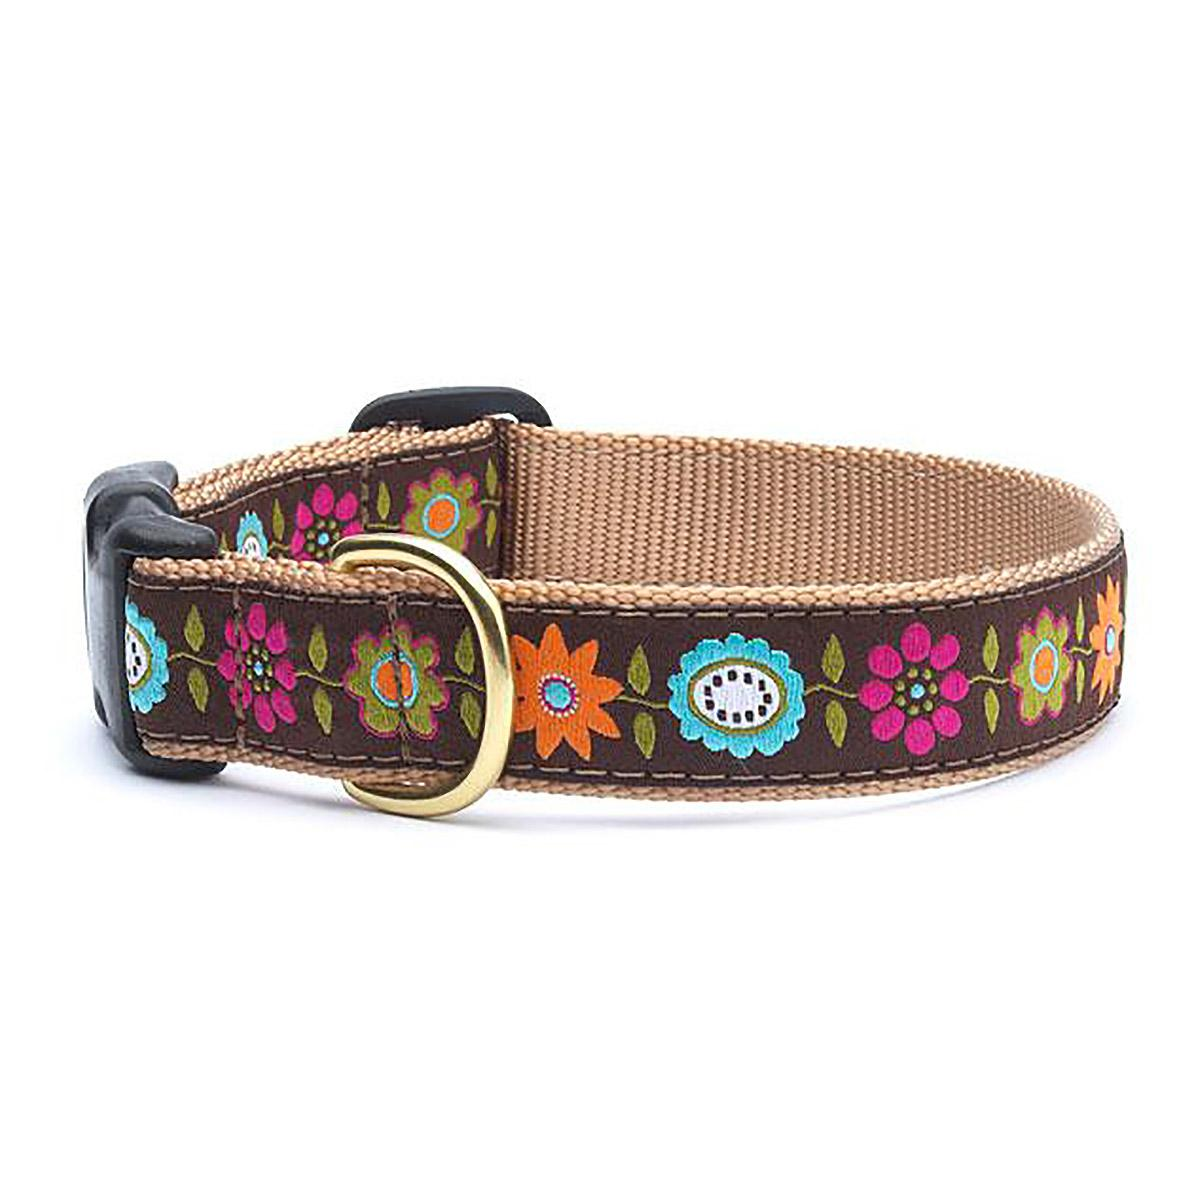 Bella Floral Dog Collar by Up Country